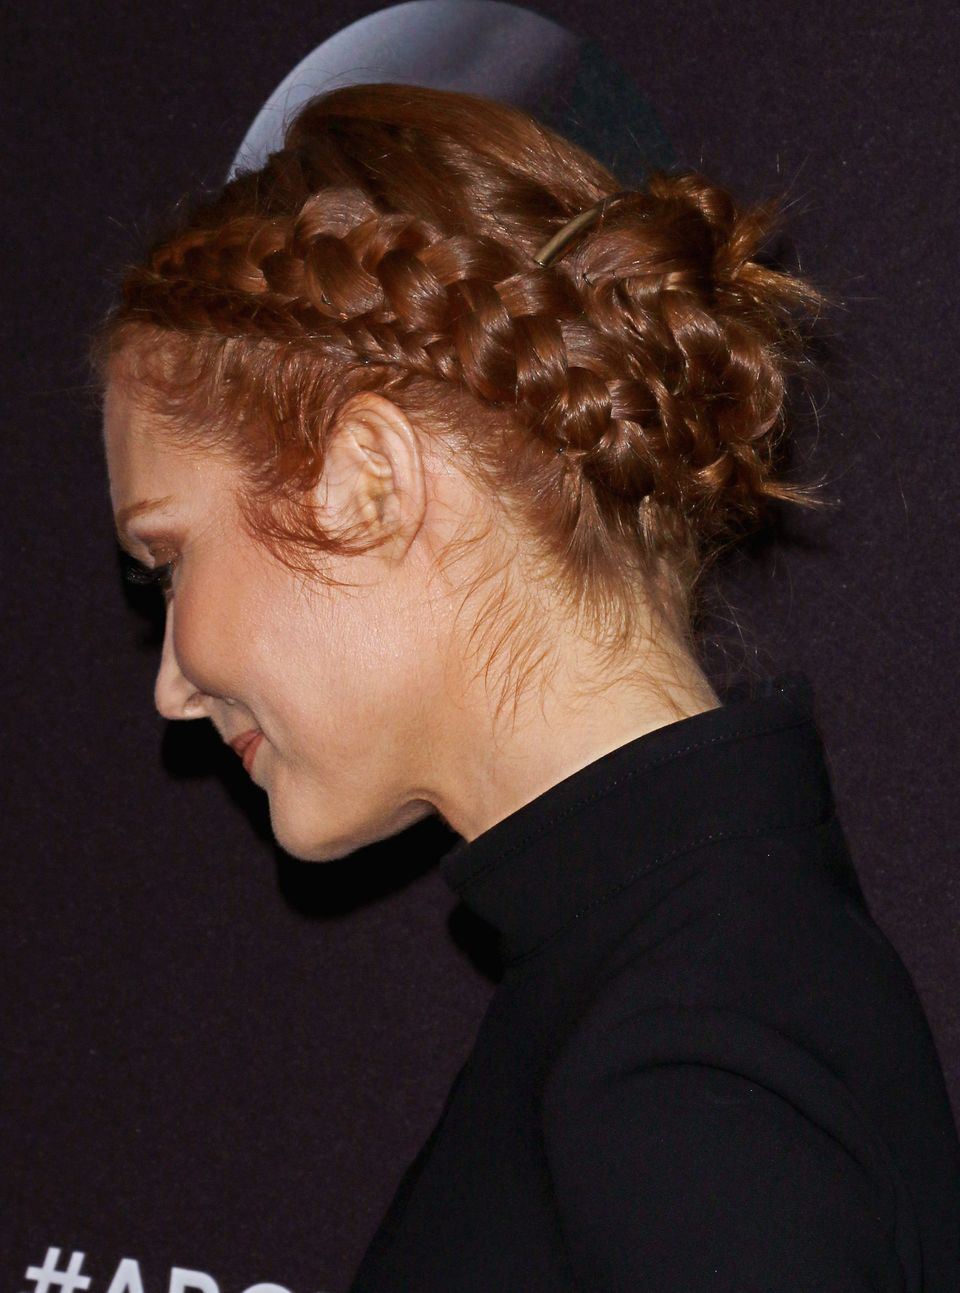 15 Photos Thatll Make You Want To Wear French Braids Every Day